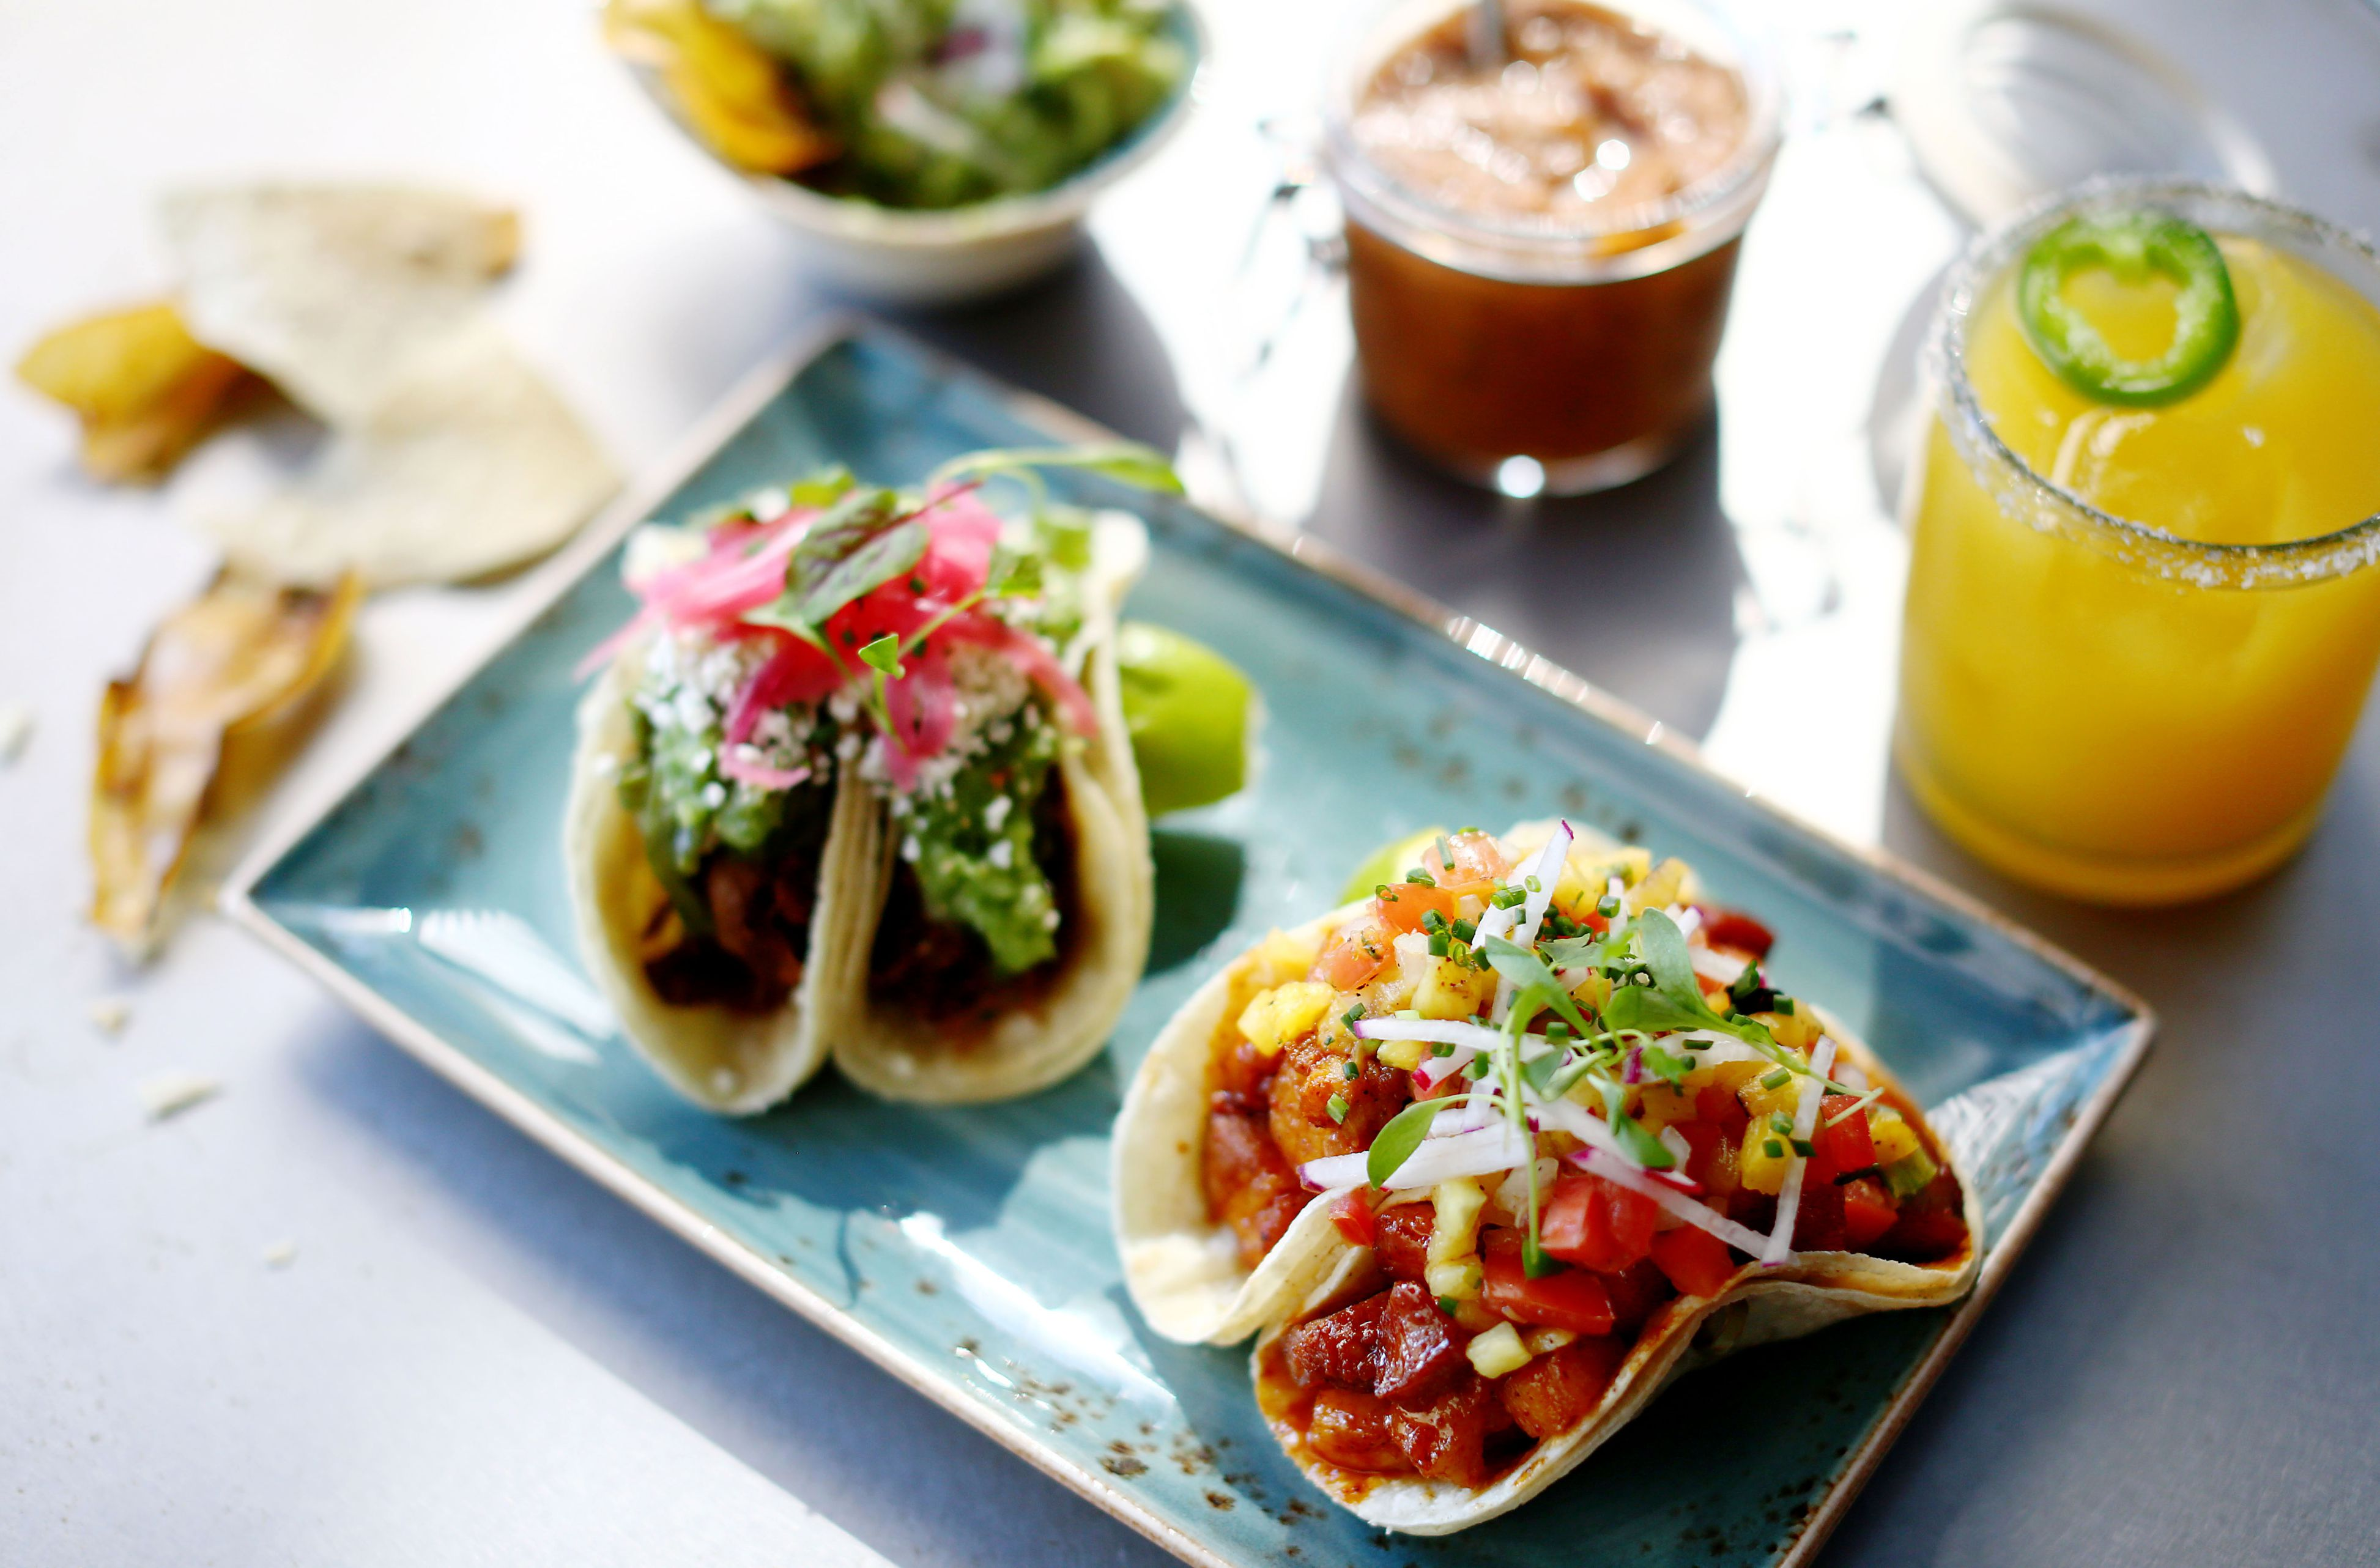 Best Low Calorie Mexican Food Choices